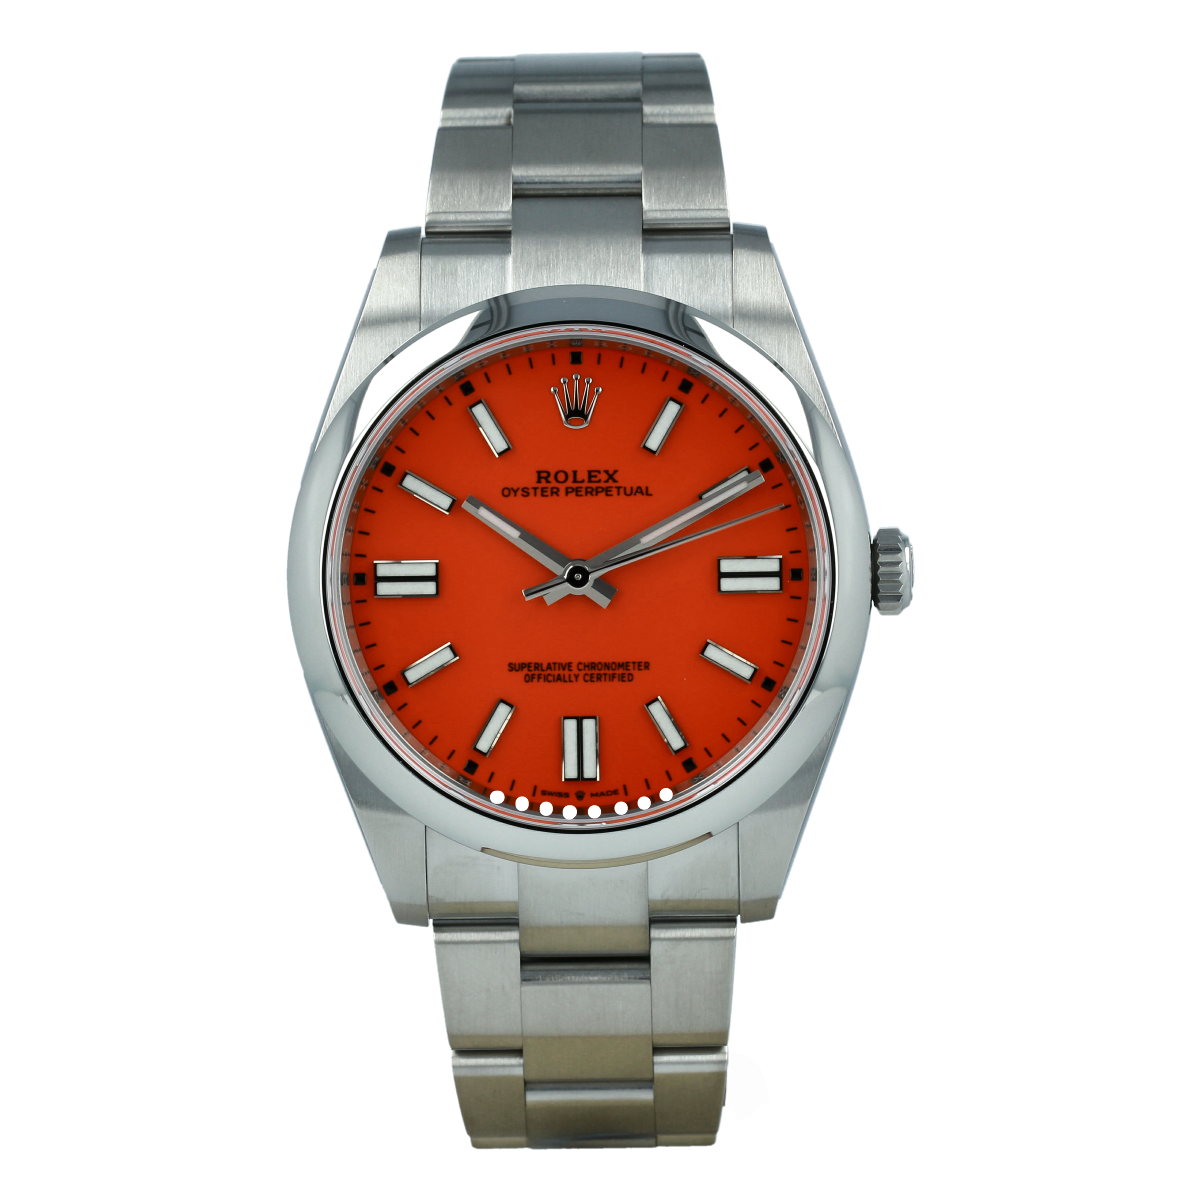 Rolex Oyster Perpetual 124300 41mm Coral Red Dial *New Model* | Buy pre-owned Rolex watch